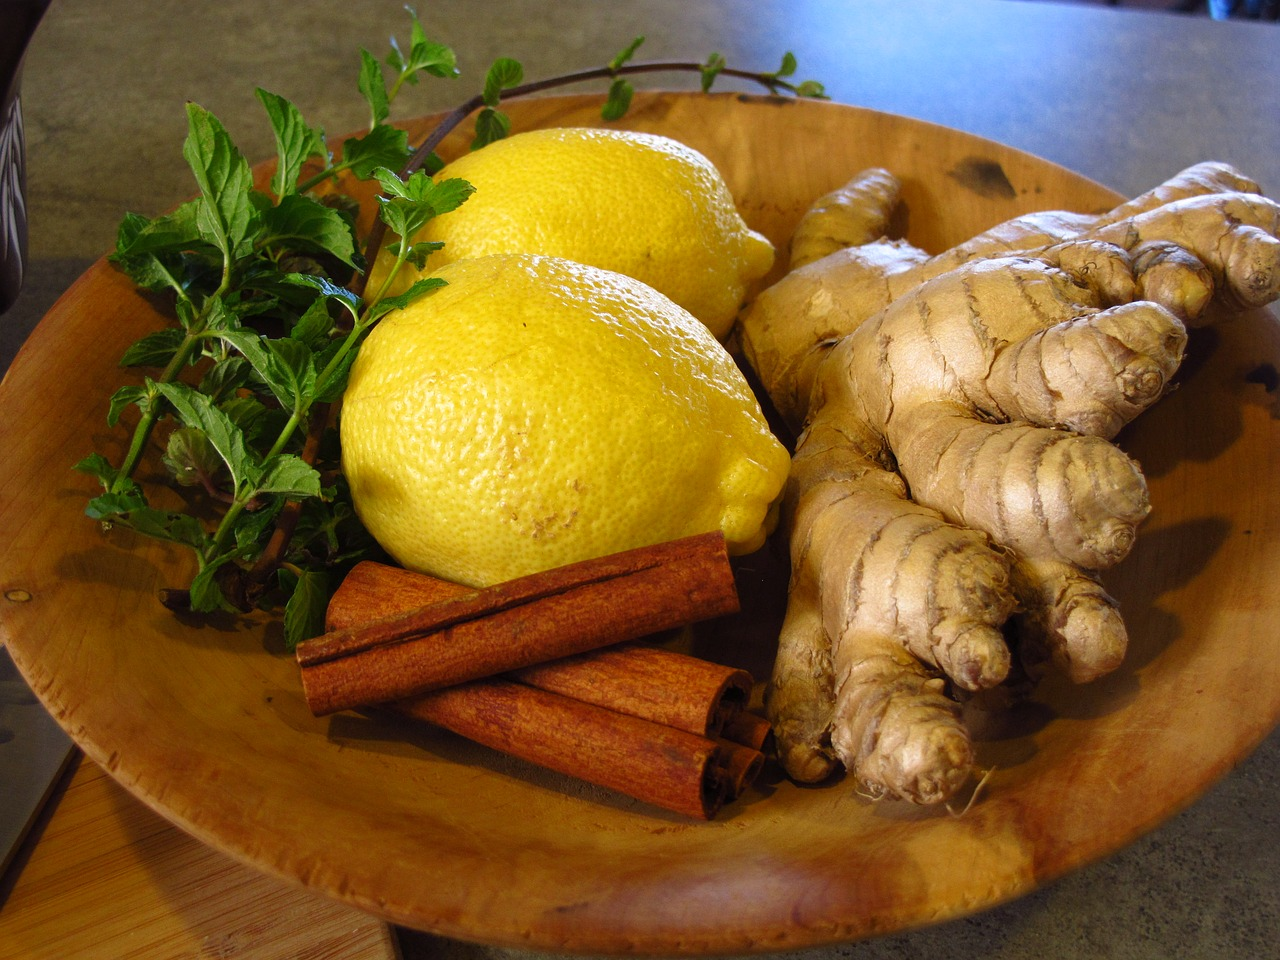 Natural remedies for norovirus